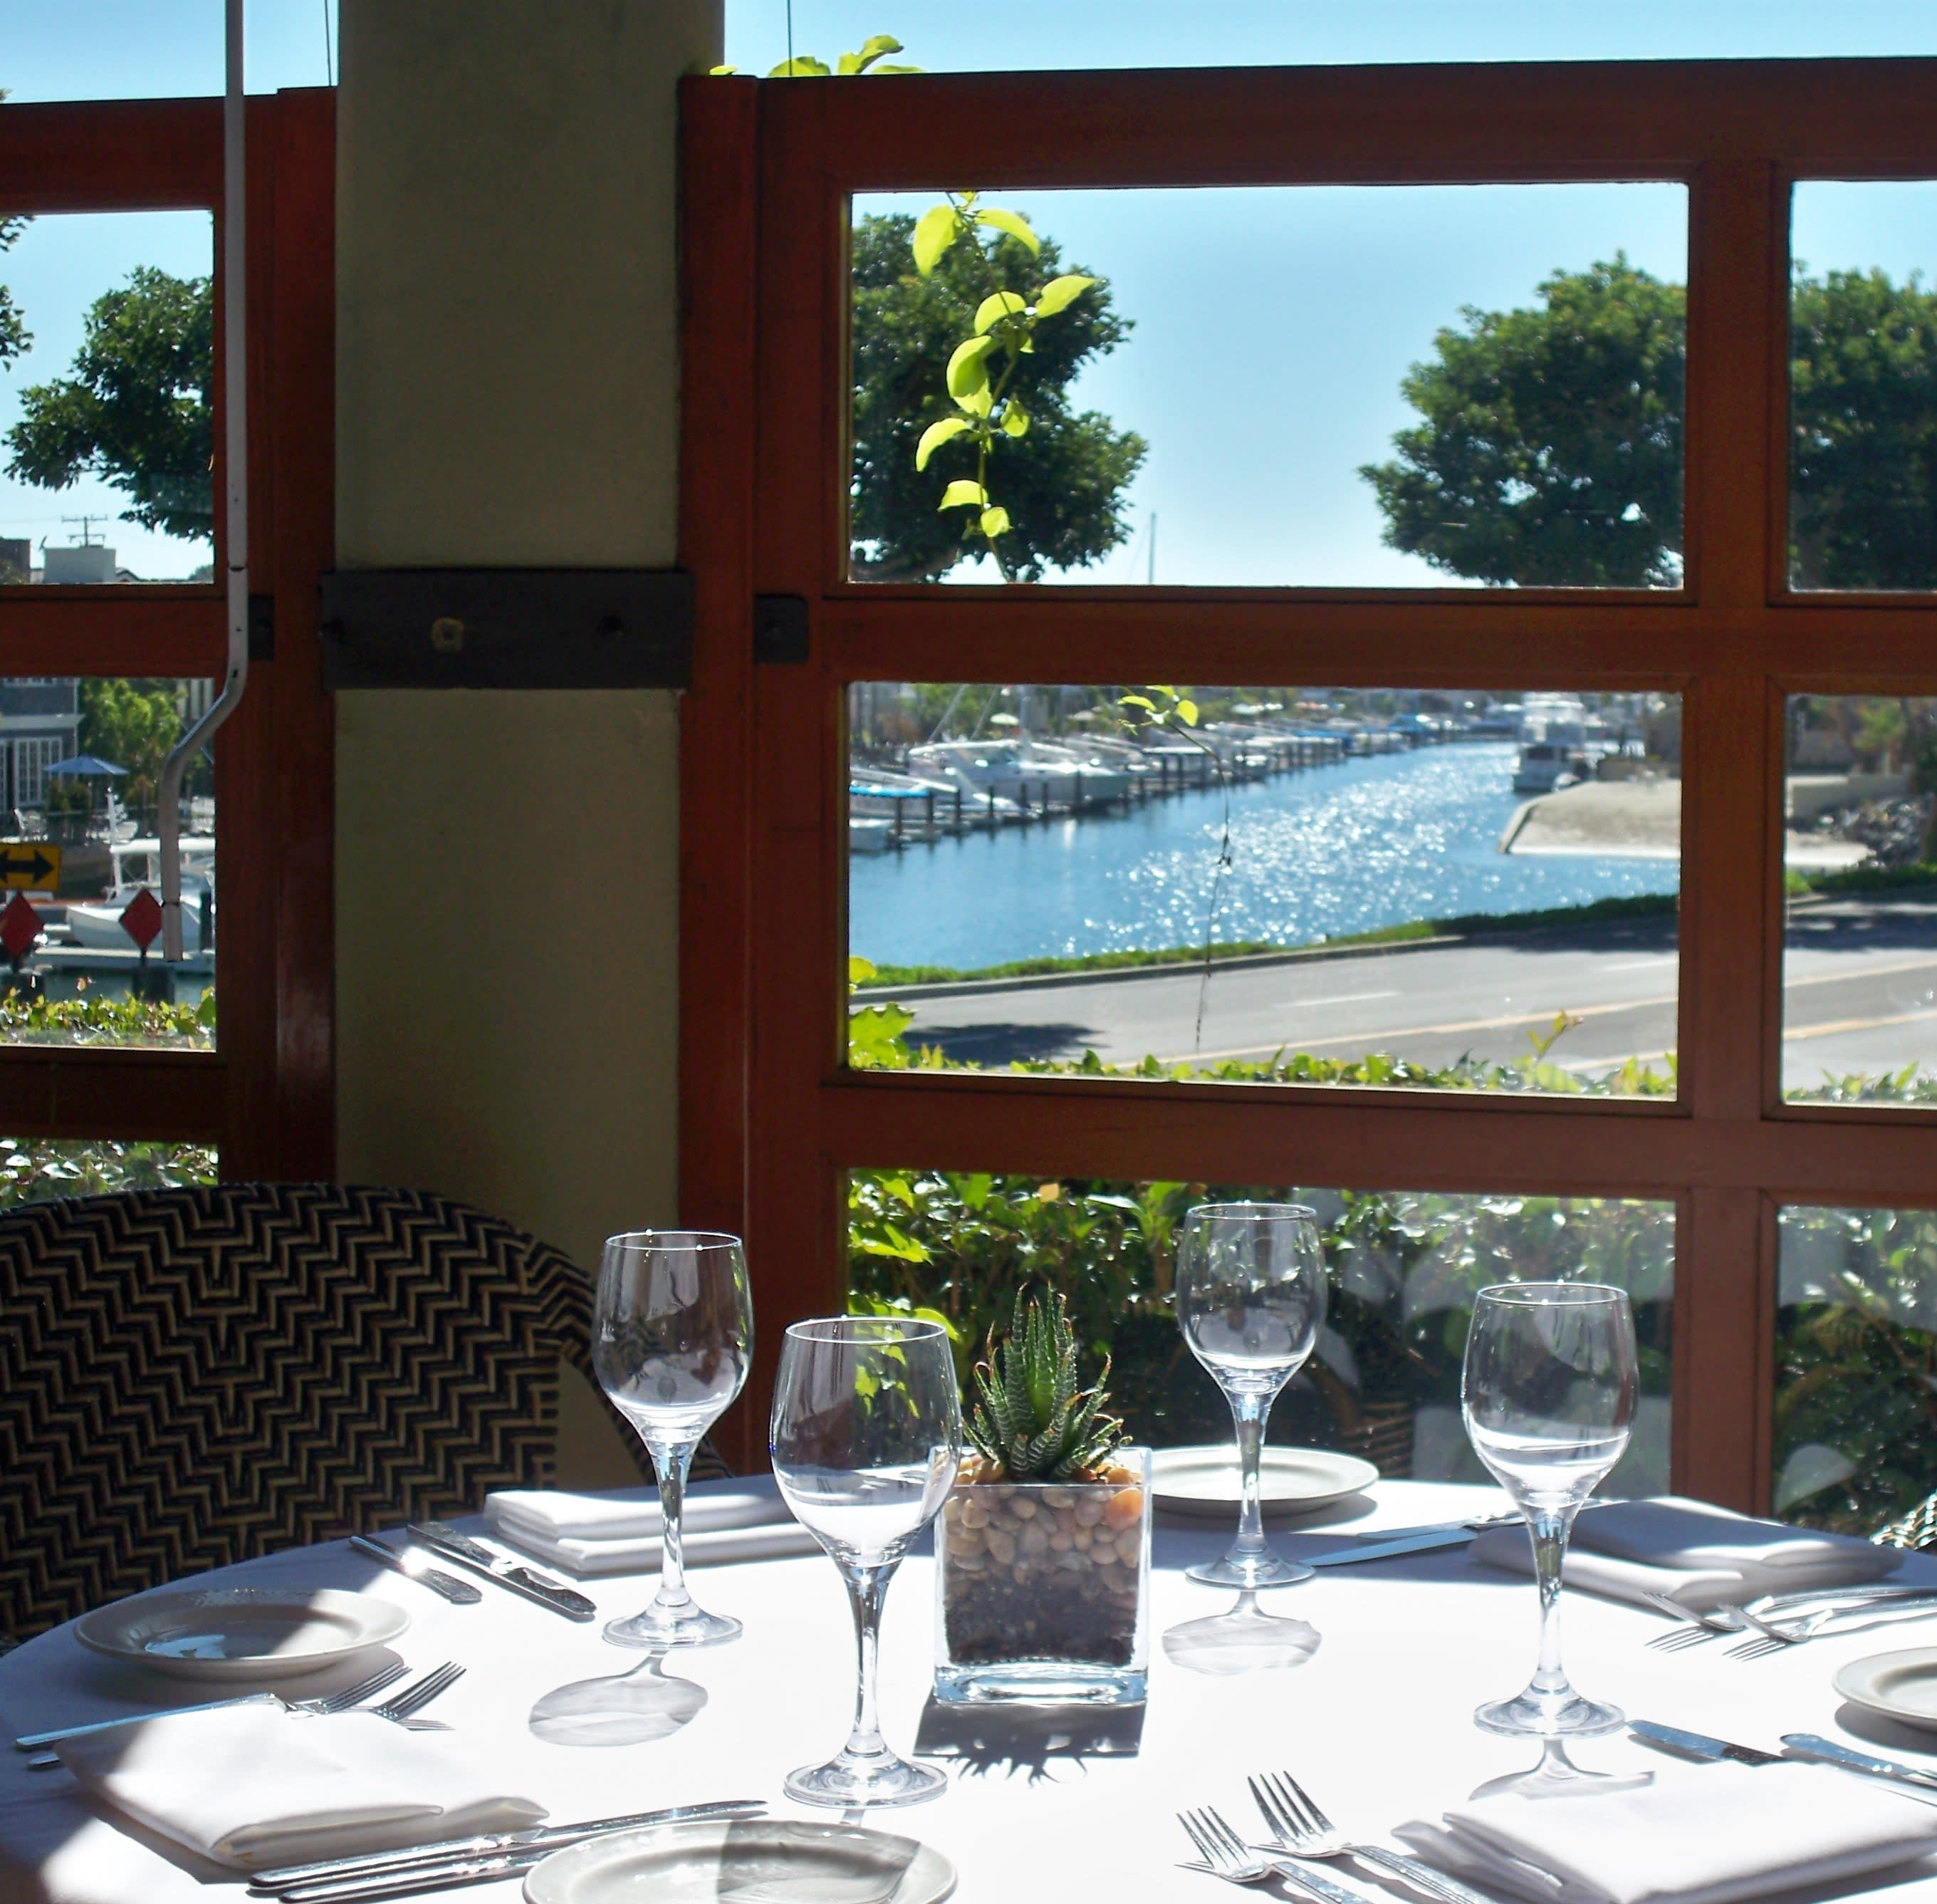 Terrace with a View at Bayside Restaurant